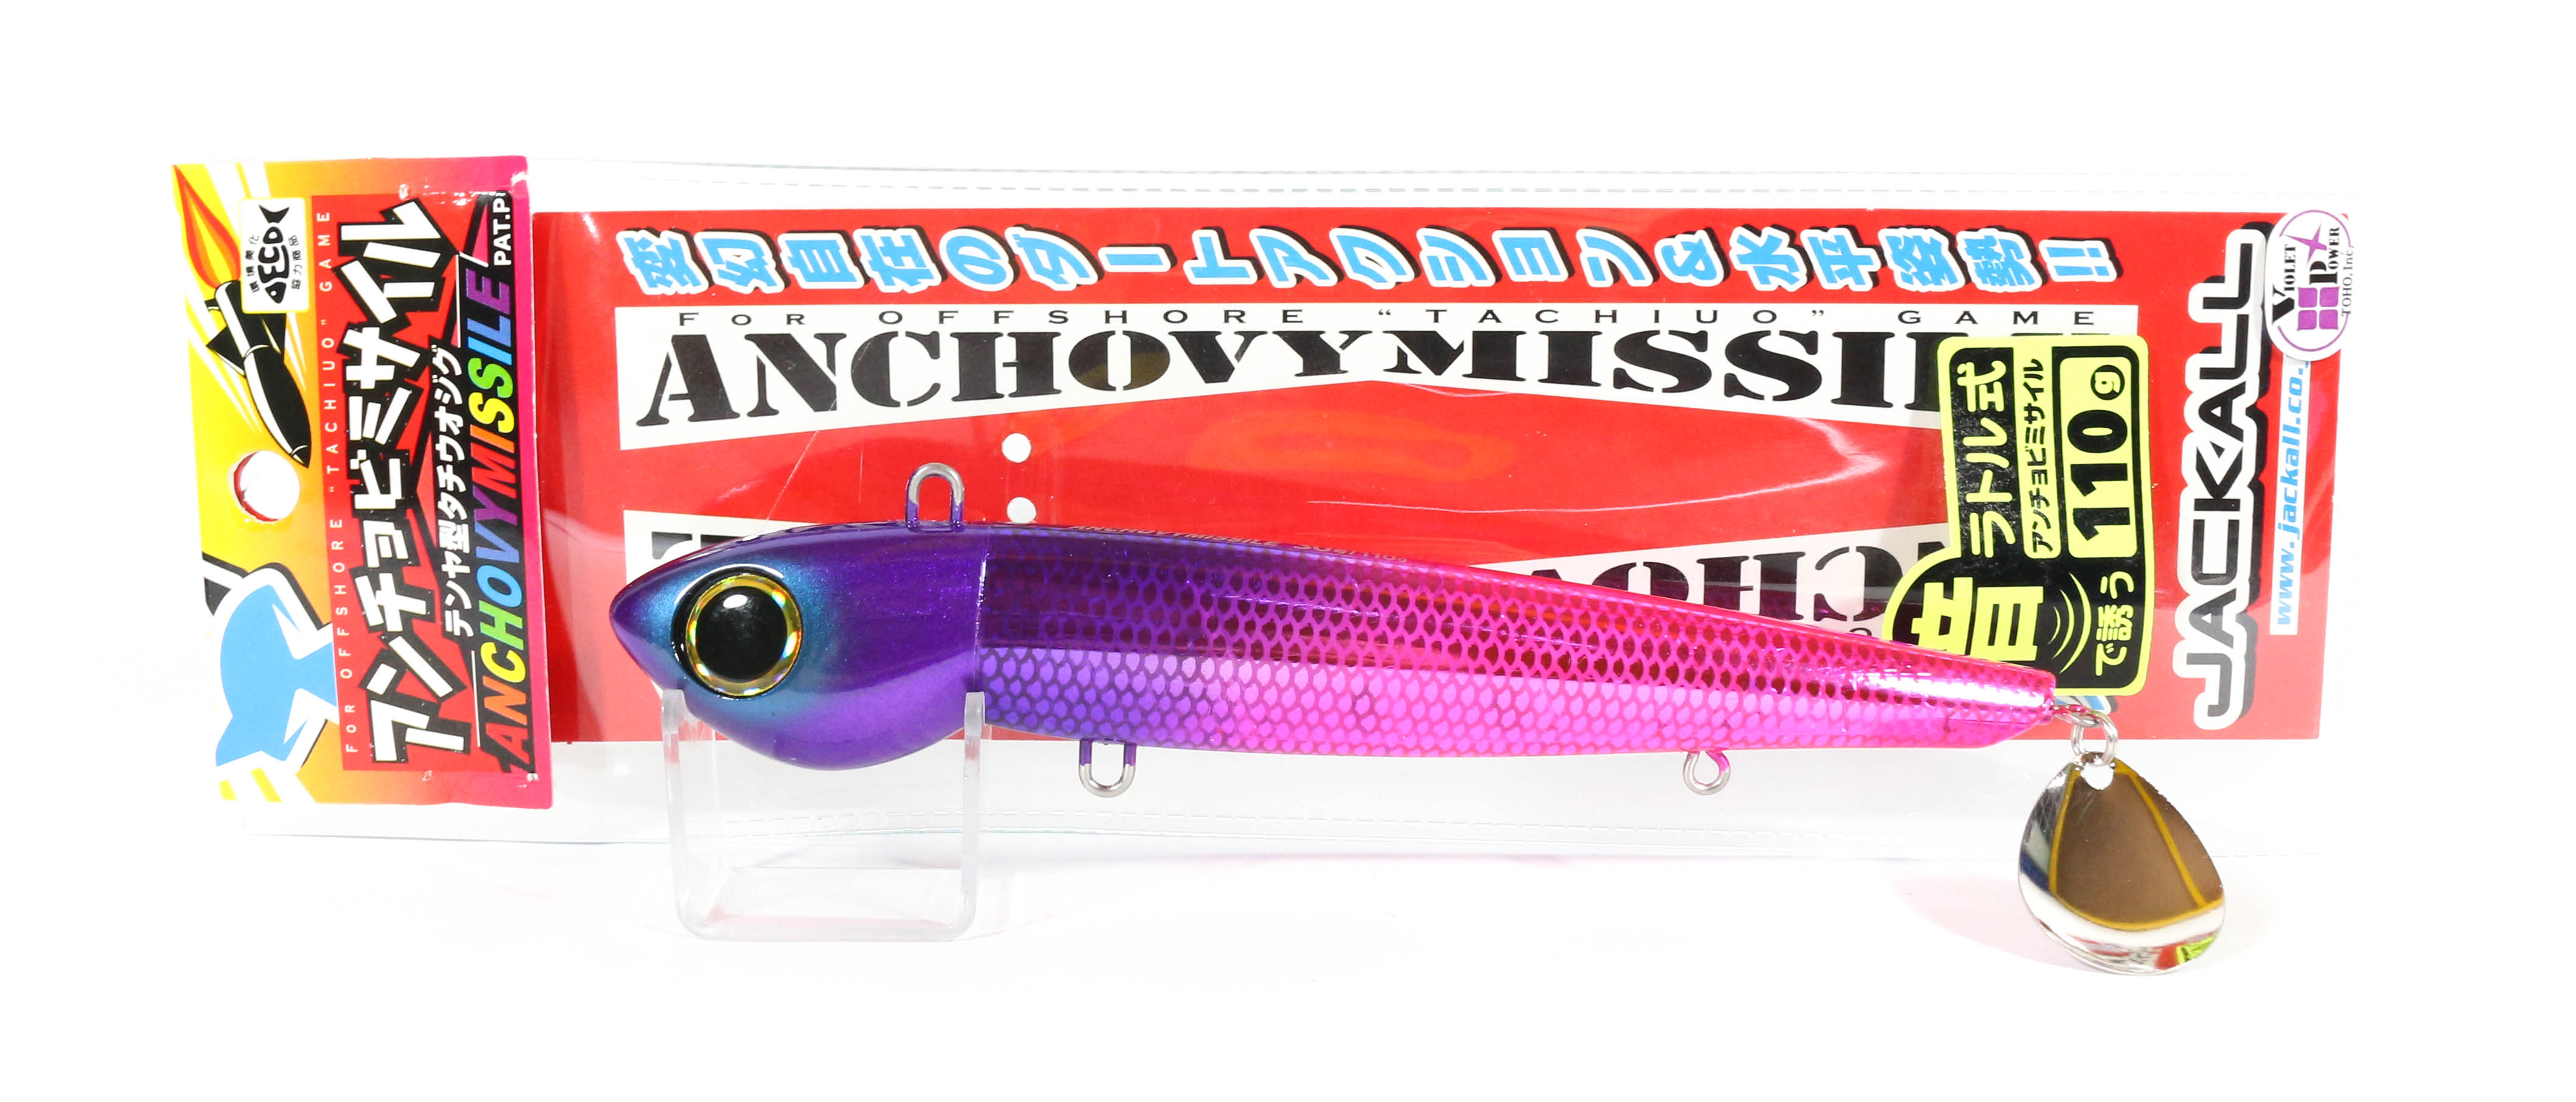 Jackall Anchovy Missile RattleShiki Jig Lure 130 grams Purple Pink (5252)